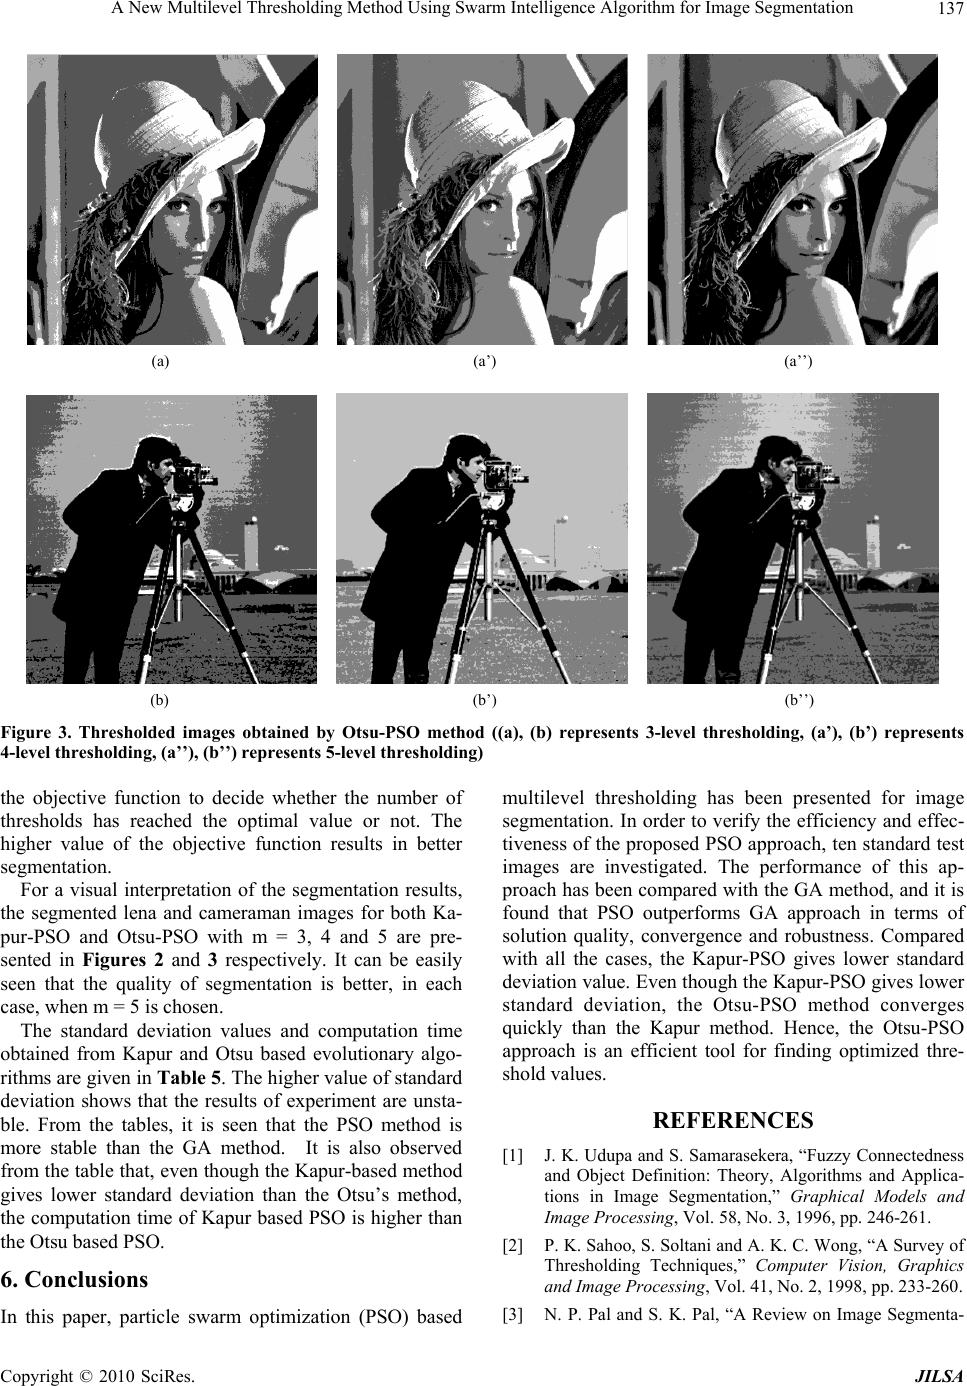 a fast algorithm for multilevel thresholding Multilevel otsu thresholding is more or less an lda dimensionality reduction (and clustering) over the histogram nonetheless, algorithms which do not complicate things that much are already there for a good implementation, look here: a fast algorithm for multi level thresholding[^.